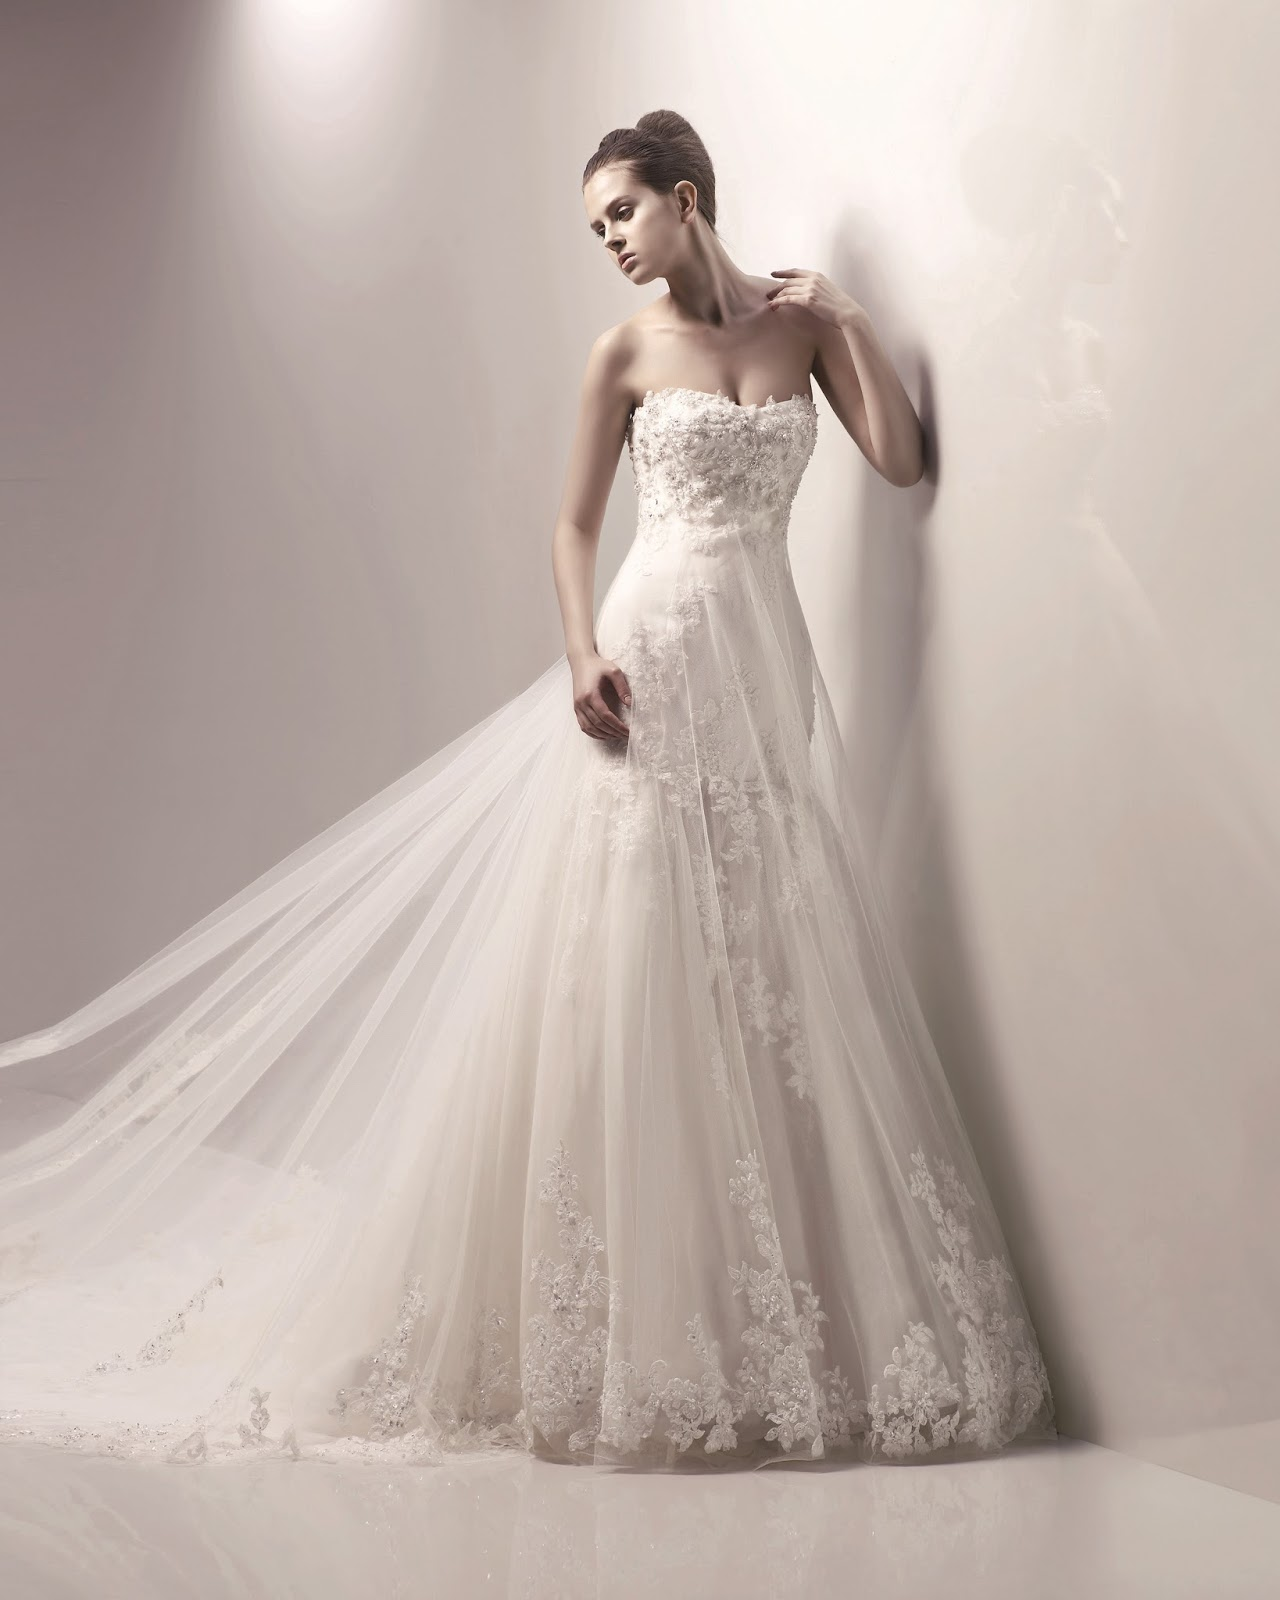 Wedding Dresses Nyc 2015 Wedding Dresses Cold Climates